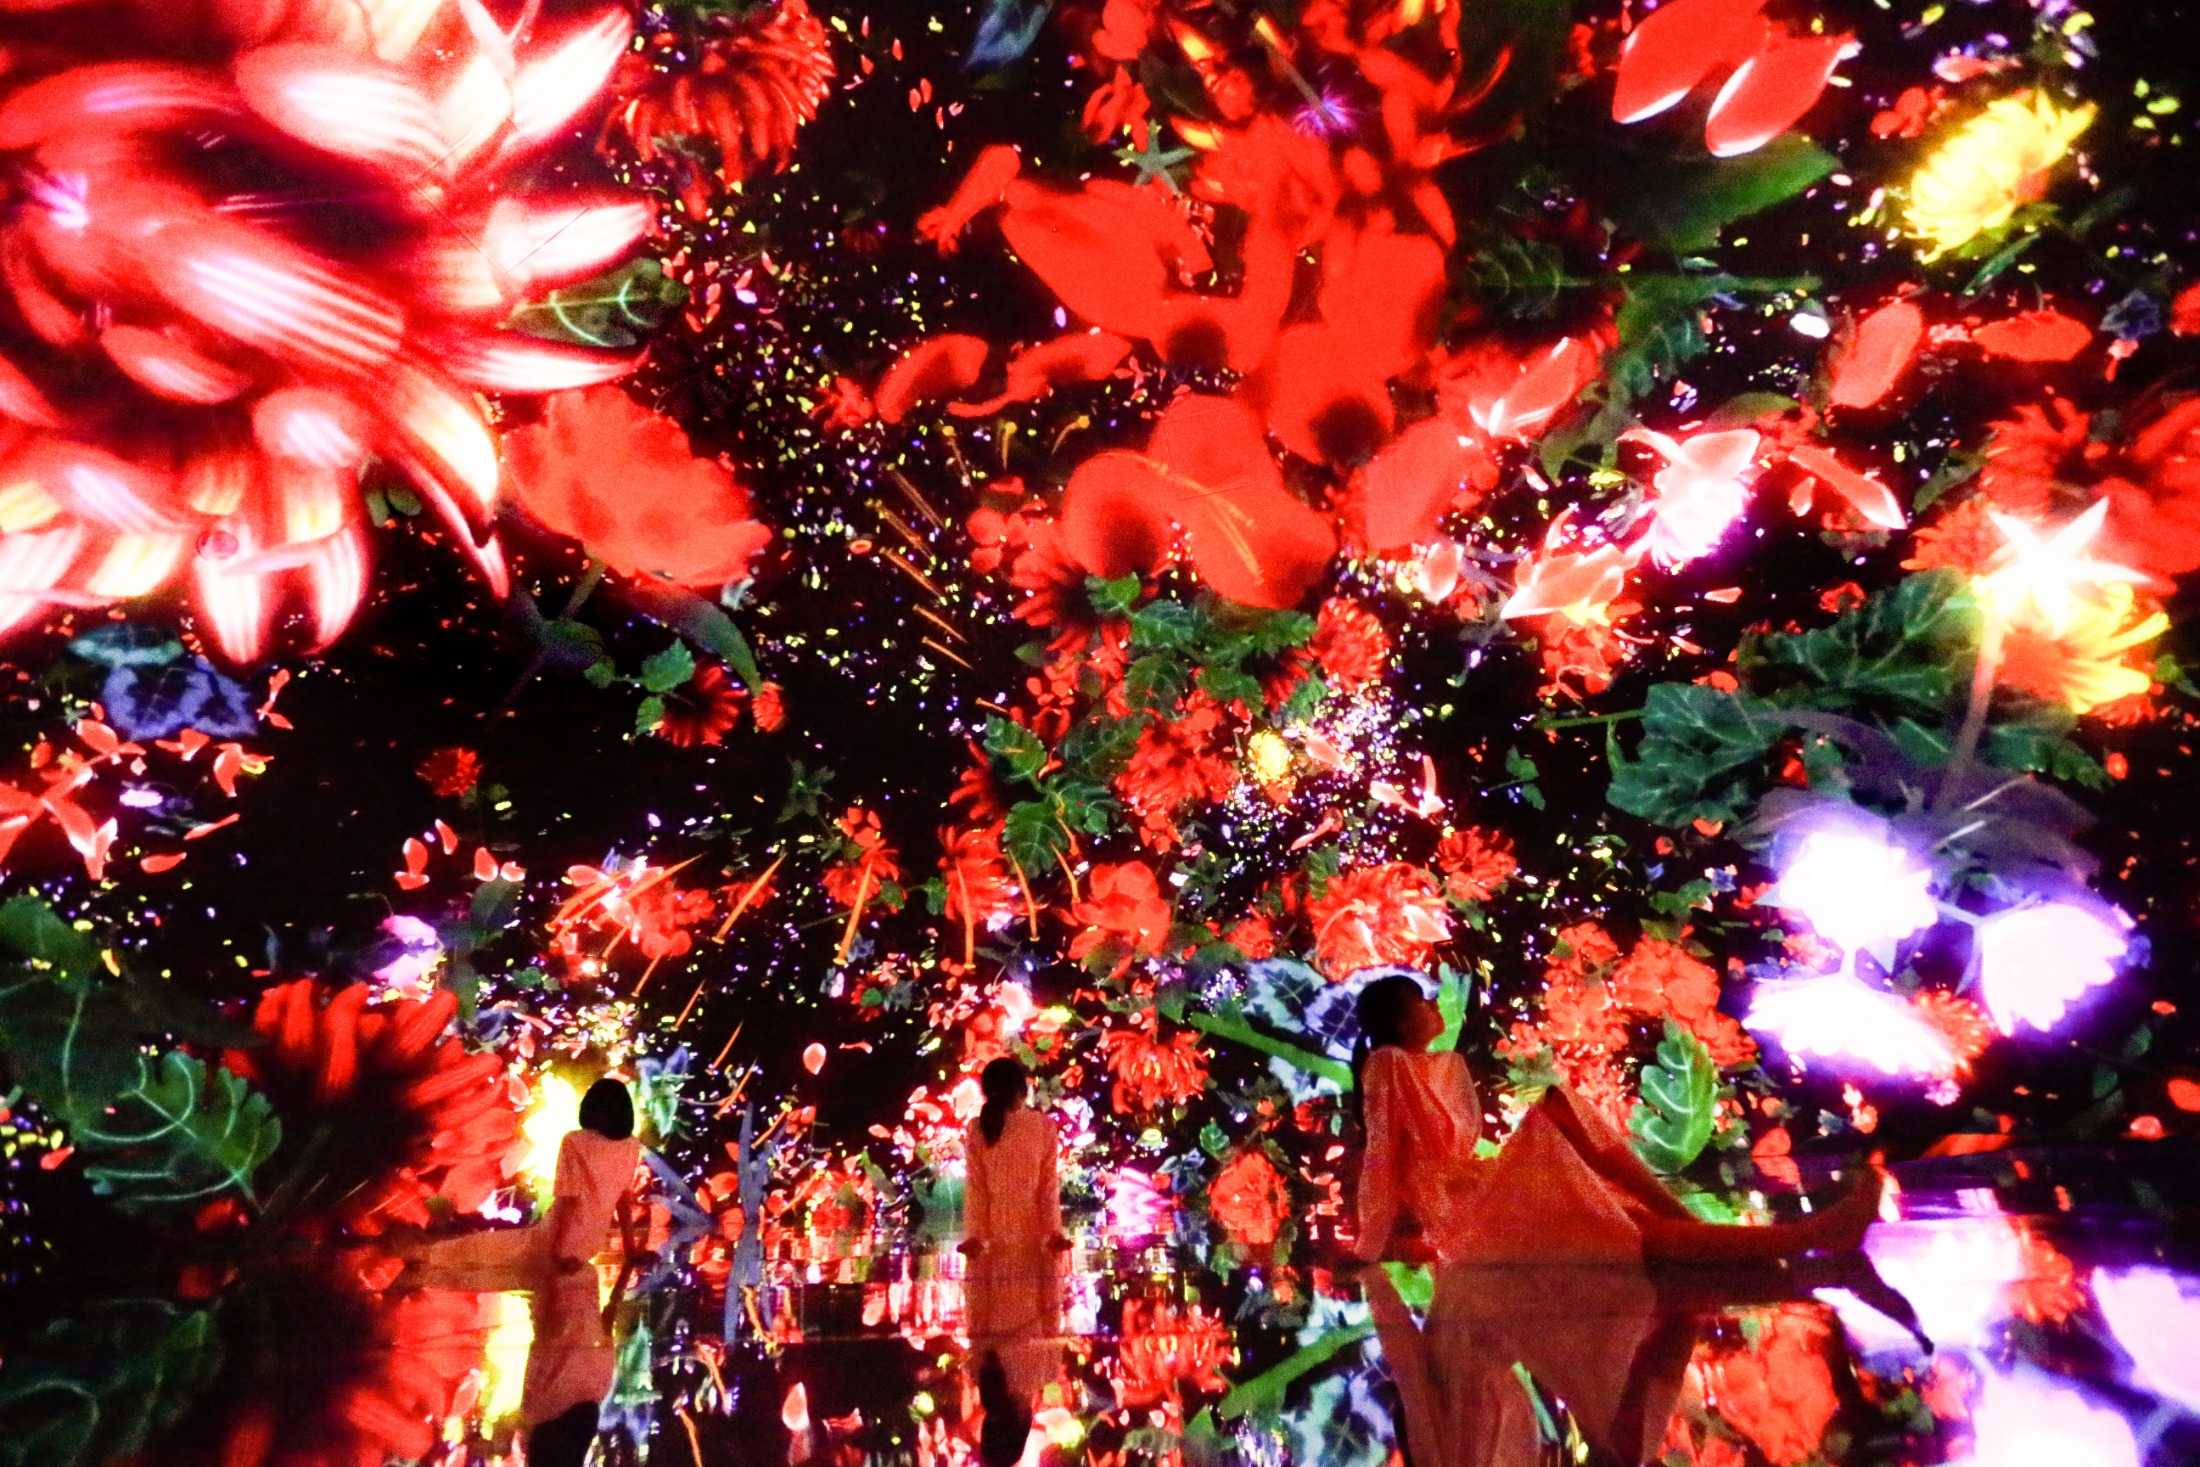 teamLab, Floating in the Falling Universe of Flowers, 2016-2018, Interactive Digital Installation, Endless, Sound: Hideaki Takahashi.